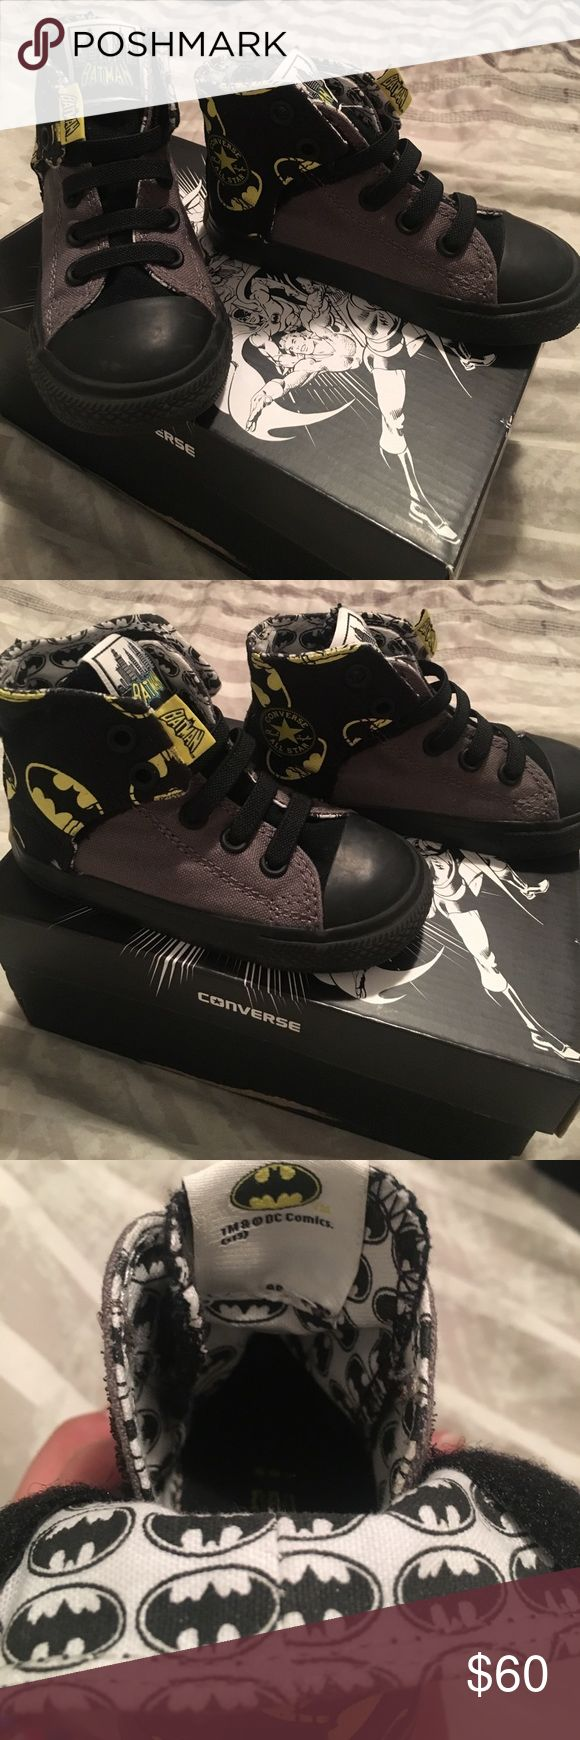 Batman Converse size 7 Rare DC Comics collab. Batman Converse. Size 7 in perfect like new condition black/dark grey/yellow/white. Elastic laces and velcro closures Converse Shoes Sneakers